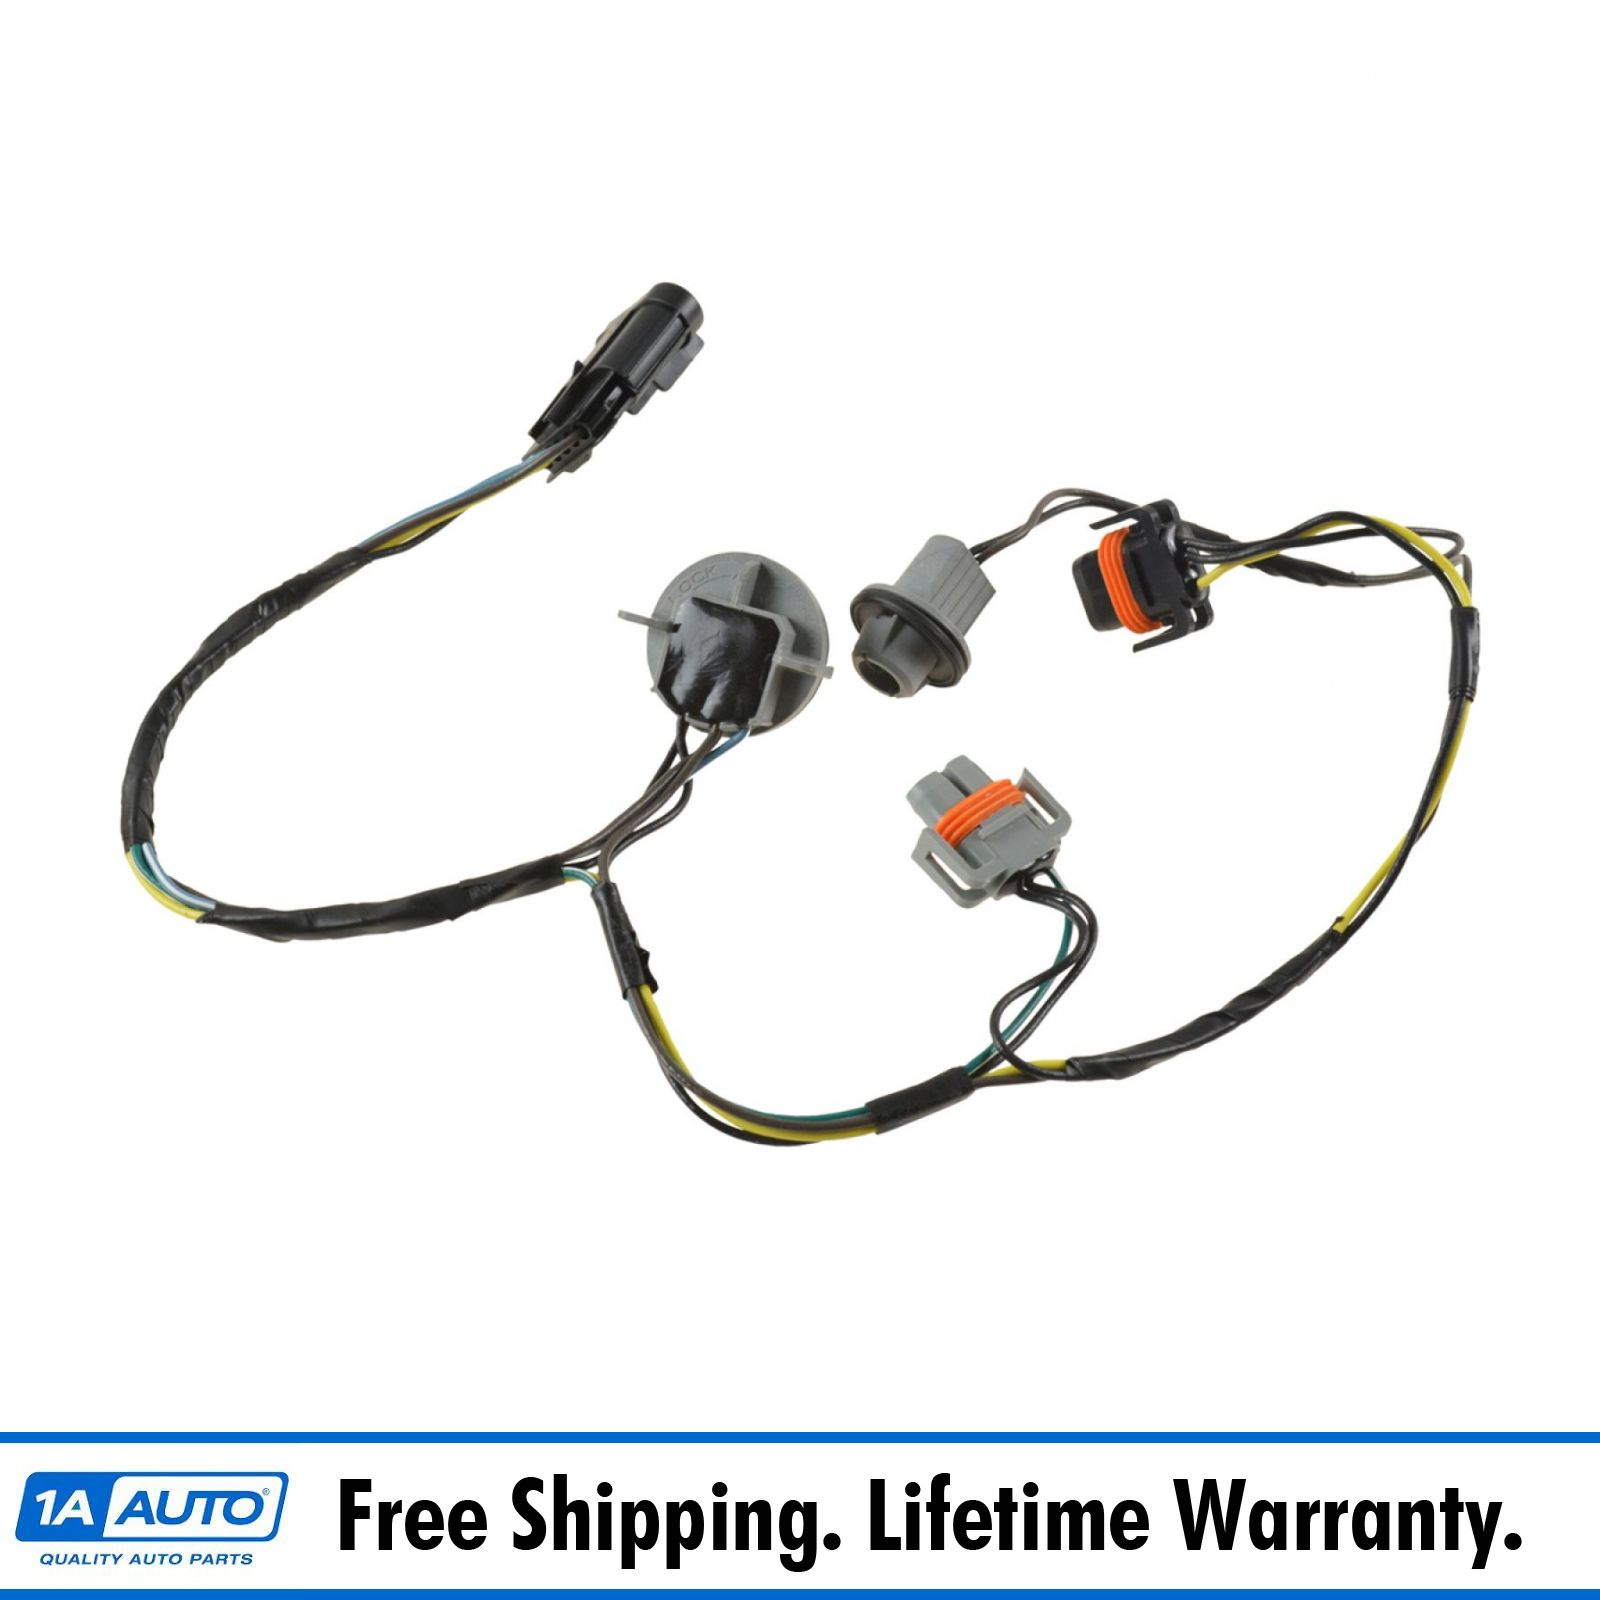 oem headlight wiring harness - photo #41